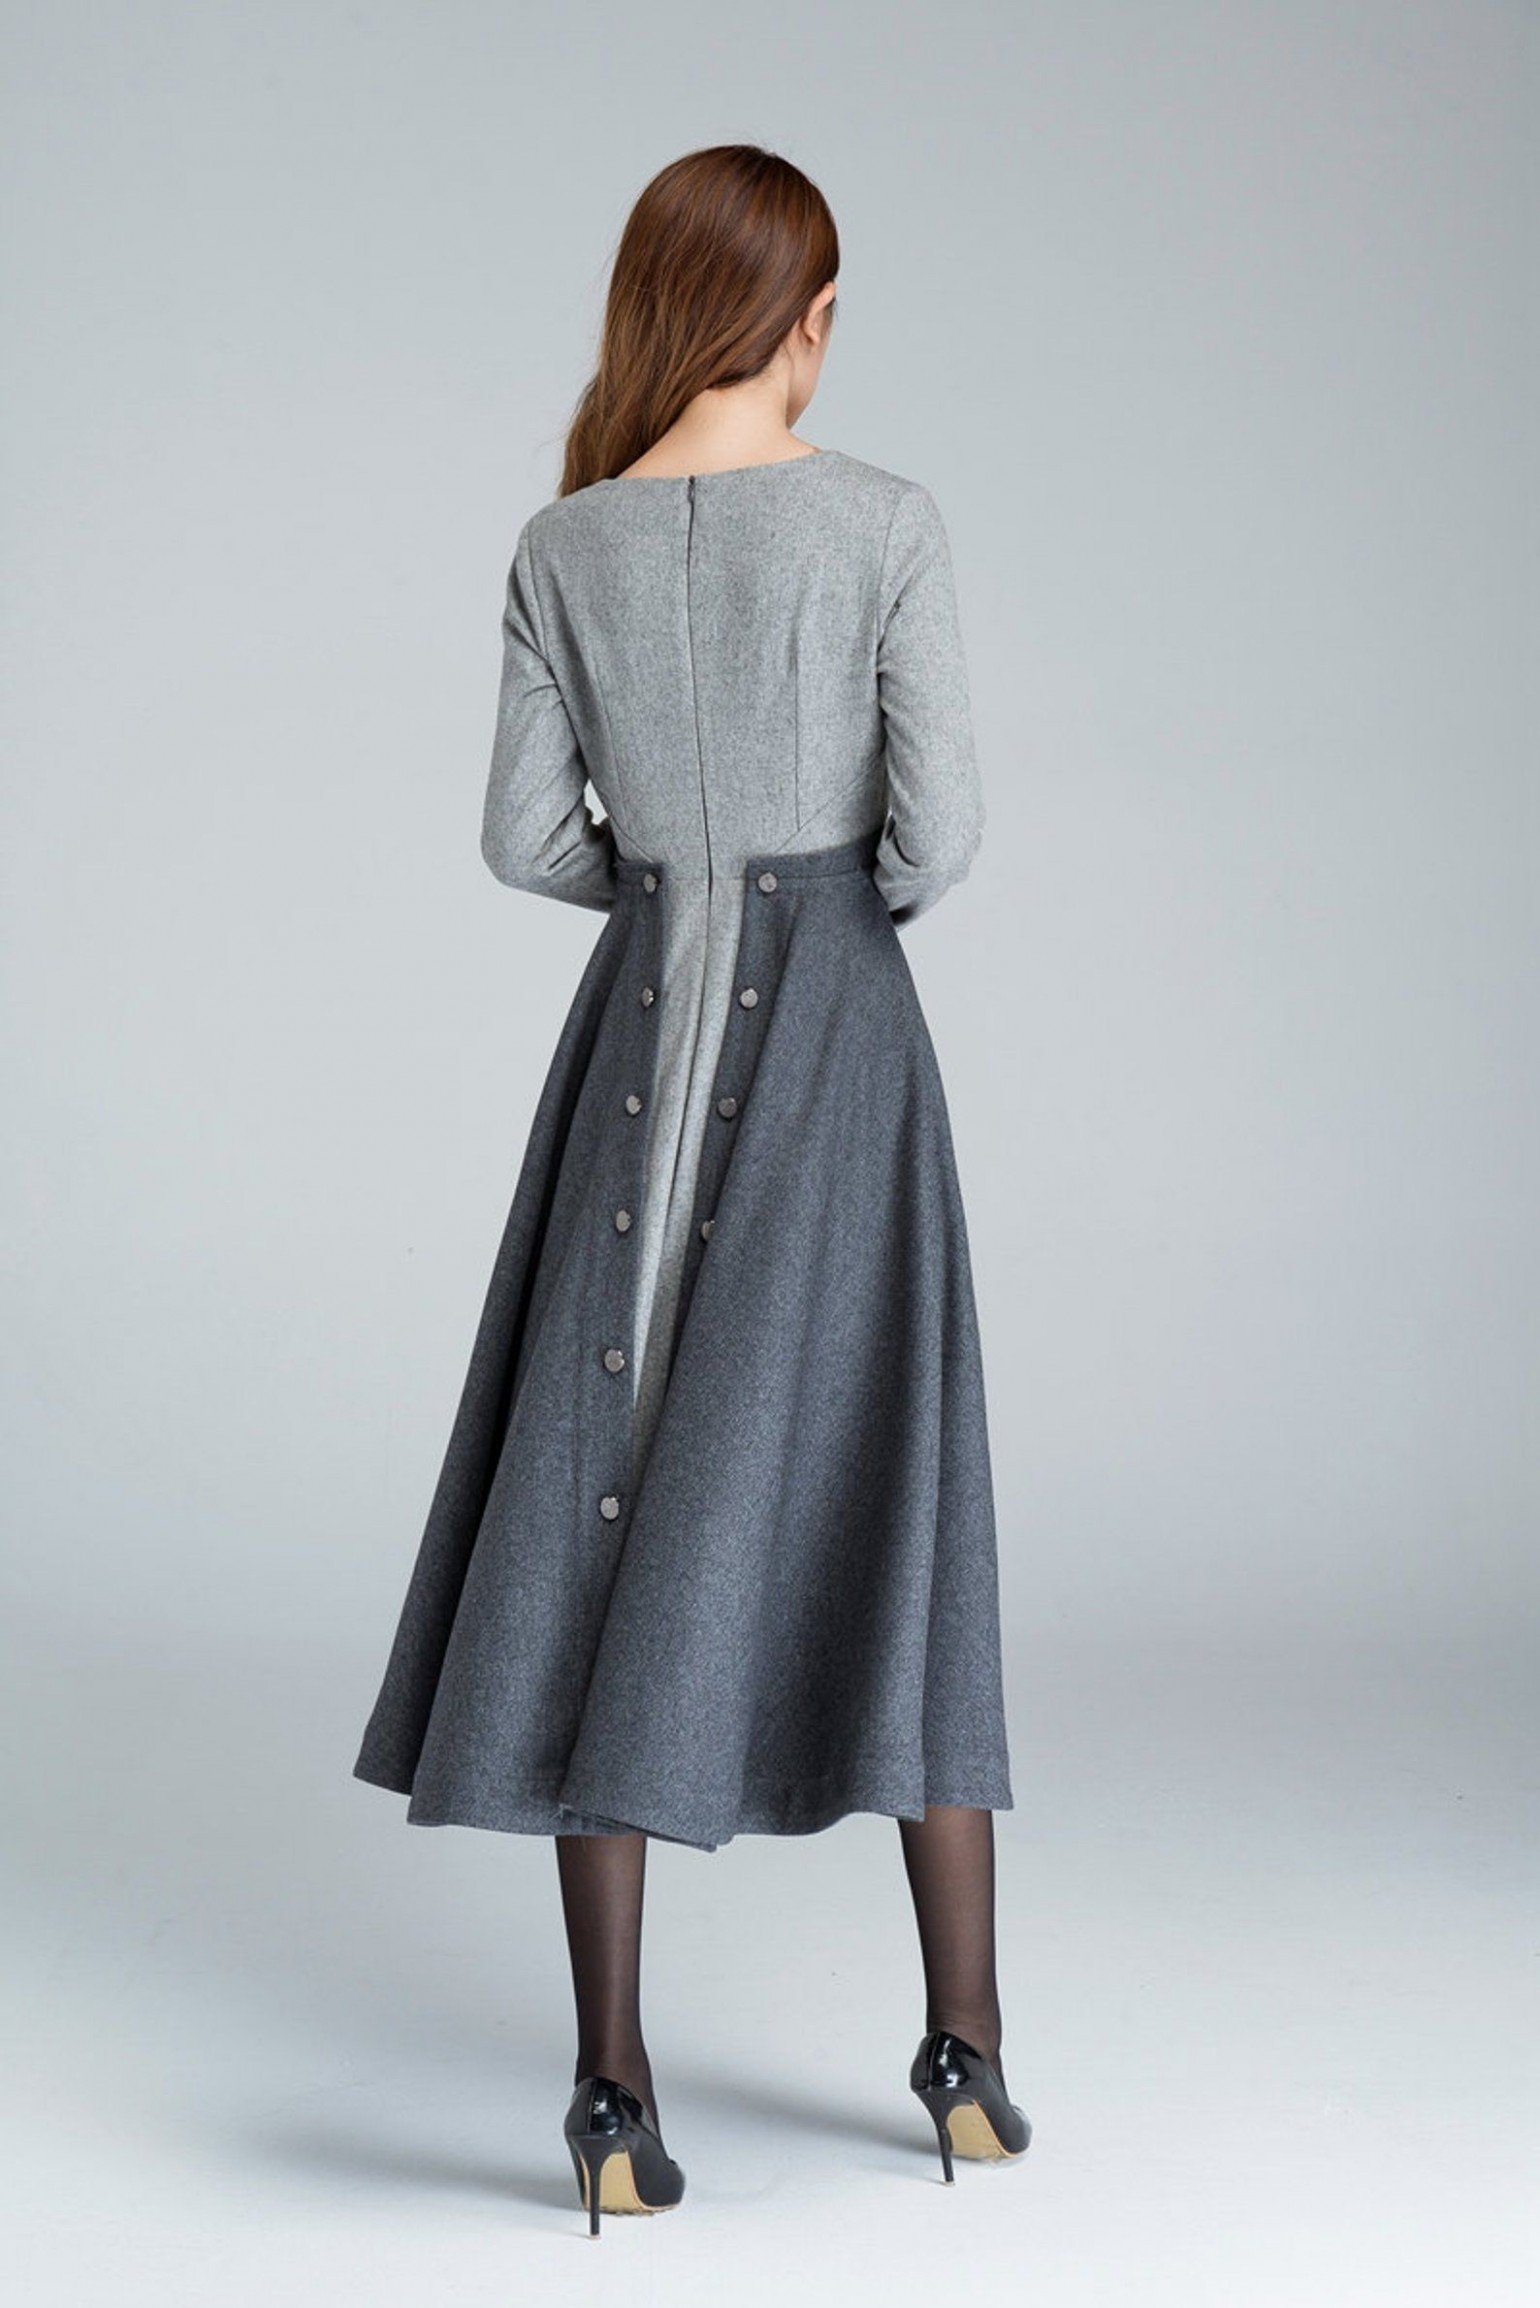 9s grey fit and flare wool dress, womens dresses, winter dress winterkleid